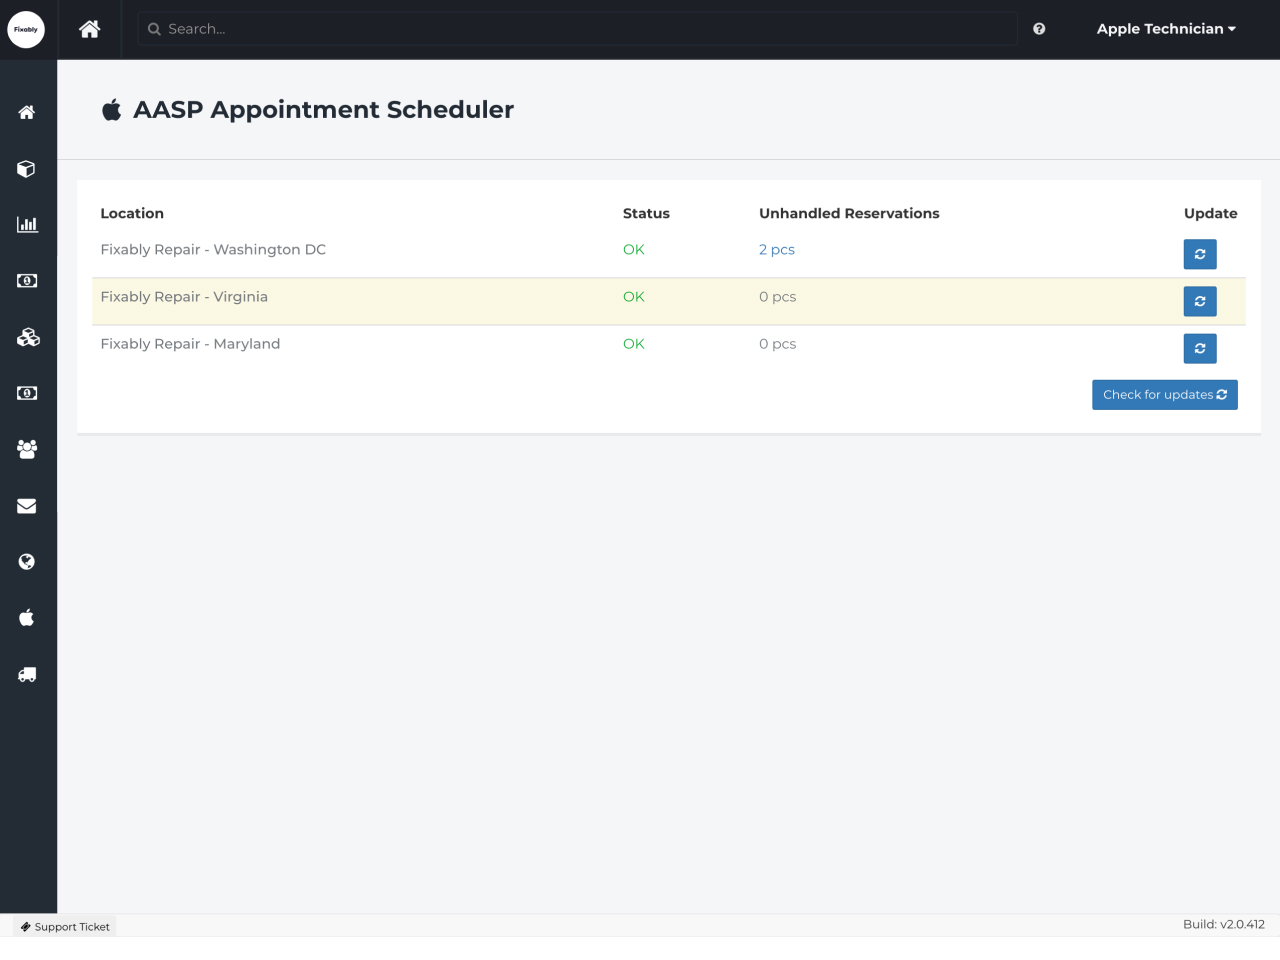 Apple Appointment Scheduler view in Fixably for Apple Authorized Service Providers.